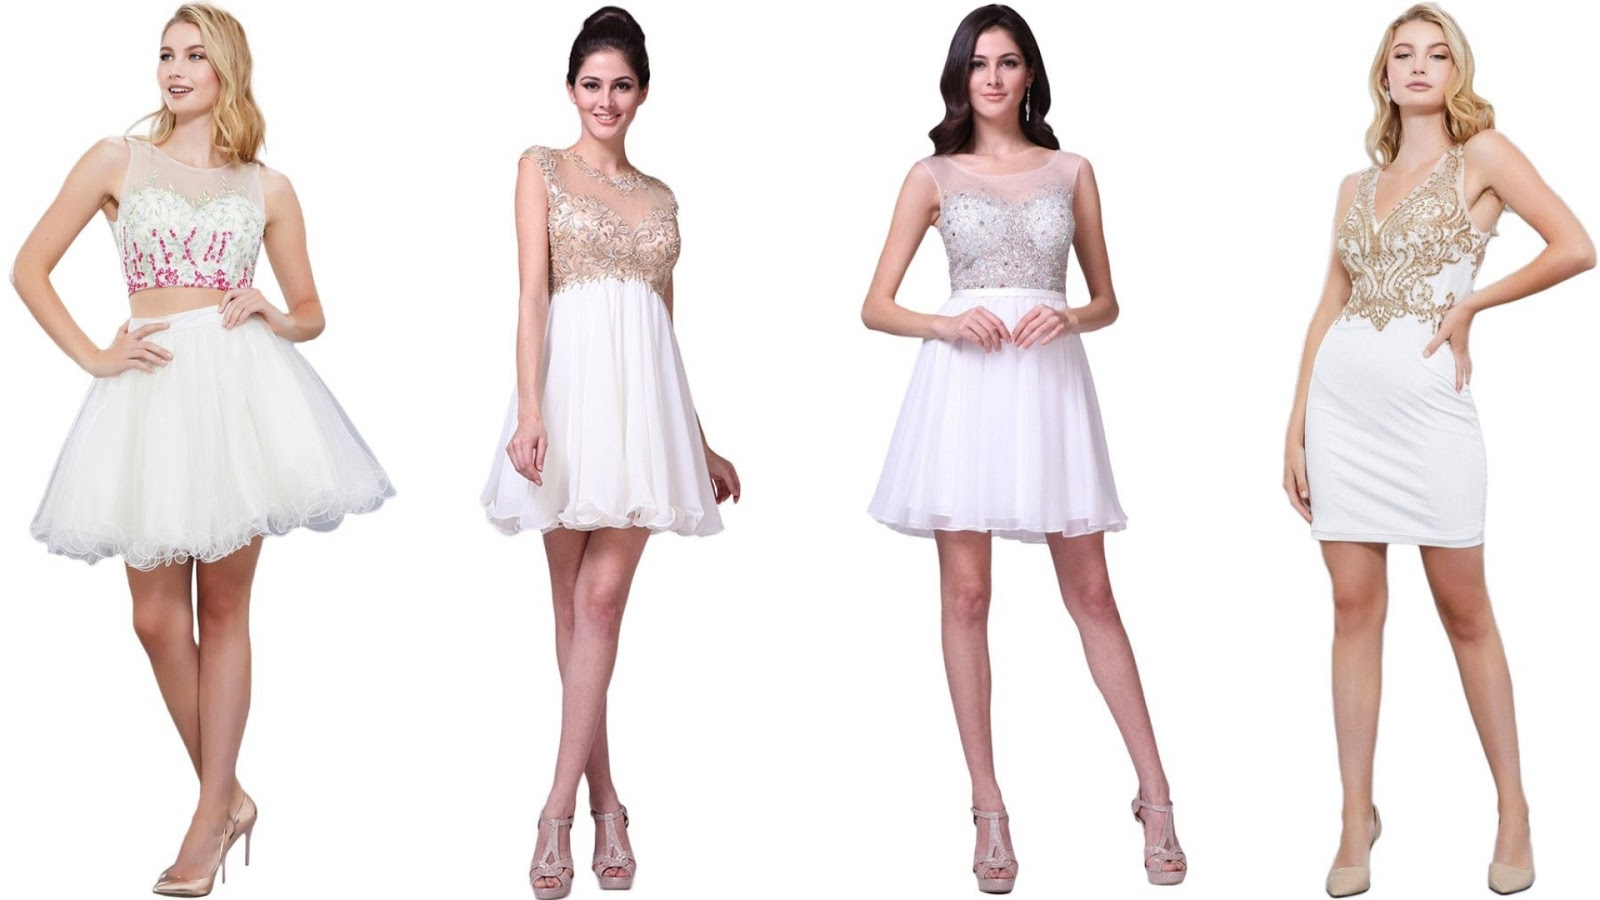 Closet Goals - A Short White Dress for Every Affair